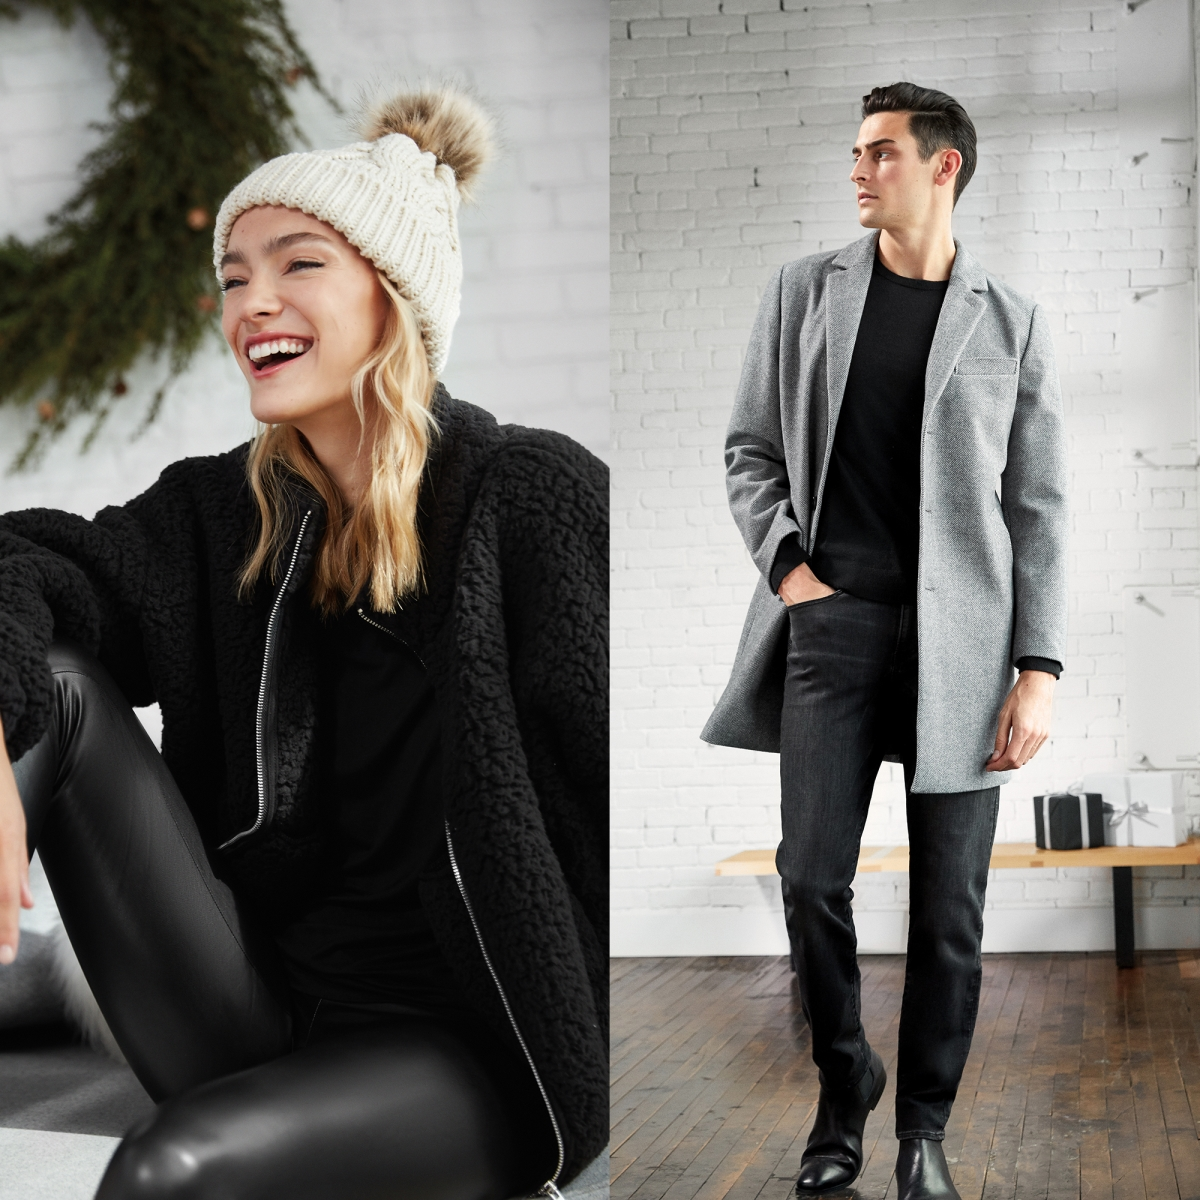 Black Friday Starts Now 50-70% Off Everything + Doorbusters! from Express